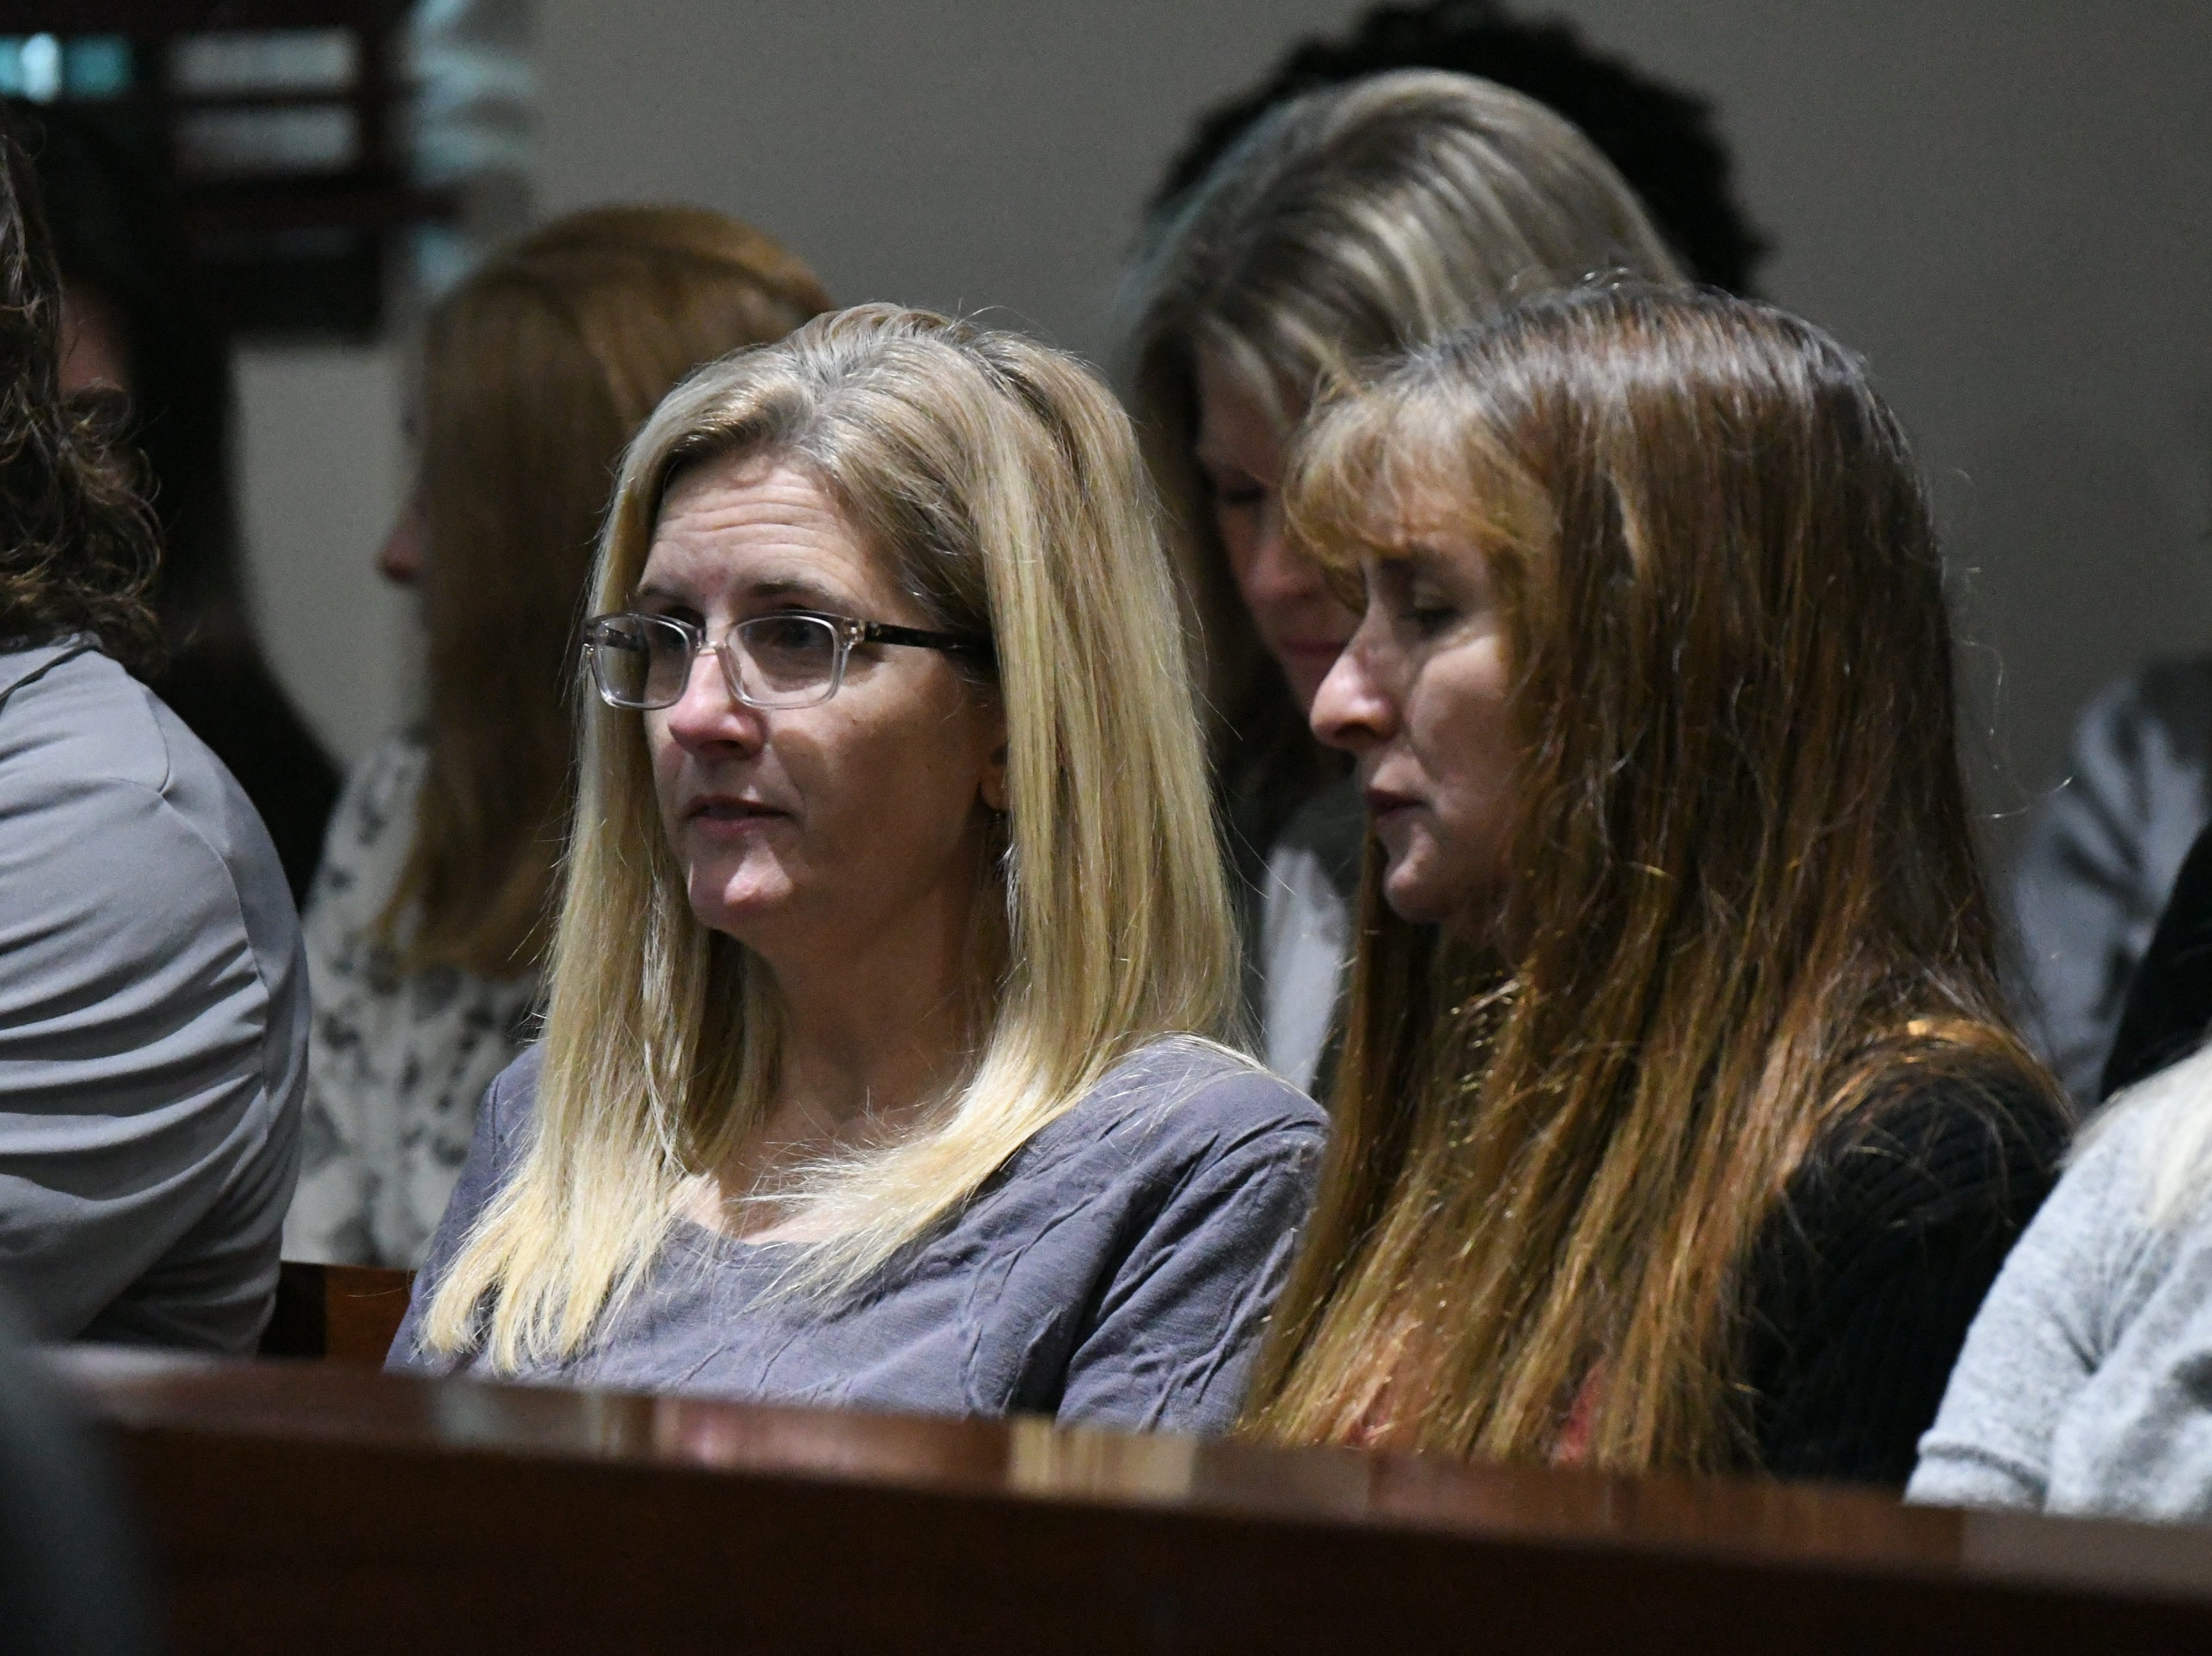 Friends and family of Denise Williams sit in the gallery of the court room for Williams' sentencing, Wednesday Feb. 6, 2019. Williams was sentenced to life in prison plus thirty years for the murder of her husband Mike Williams.